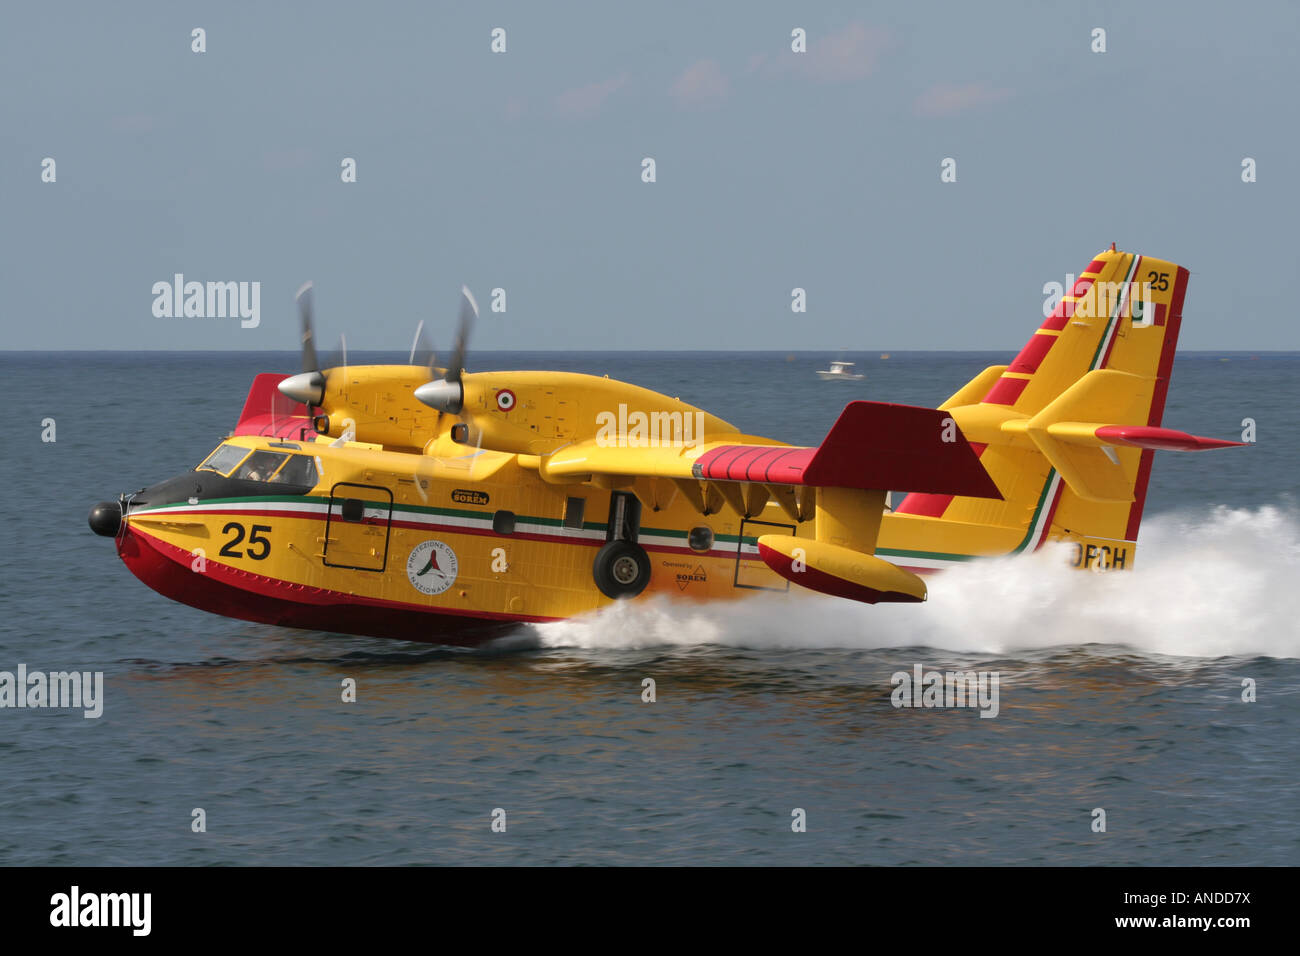 An Italian Bombardier 415 (Canadair CL-415) waterbomber seaplane skimming the sea - Stock Image